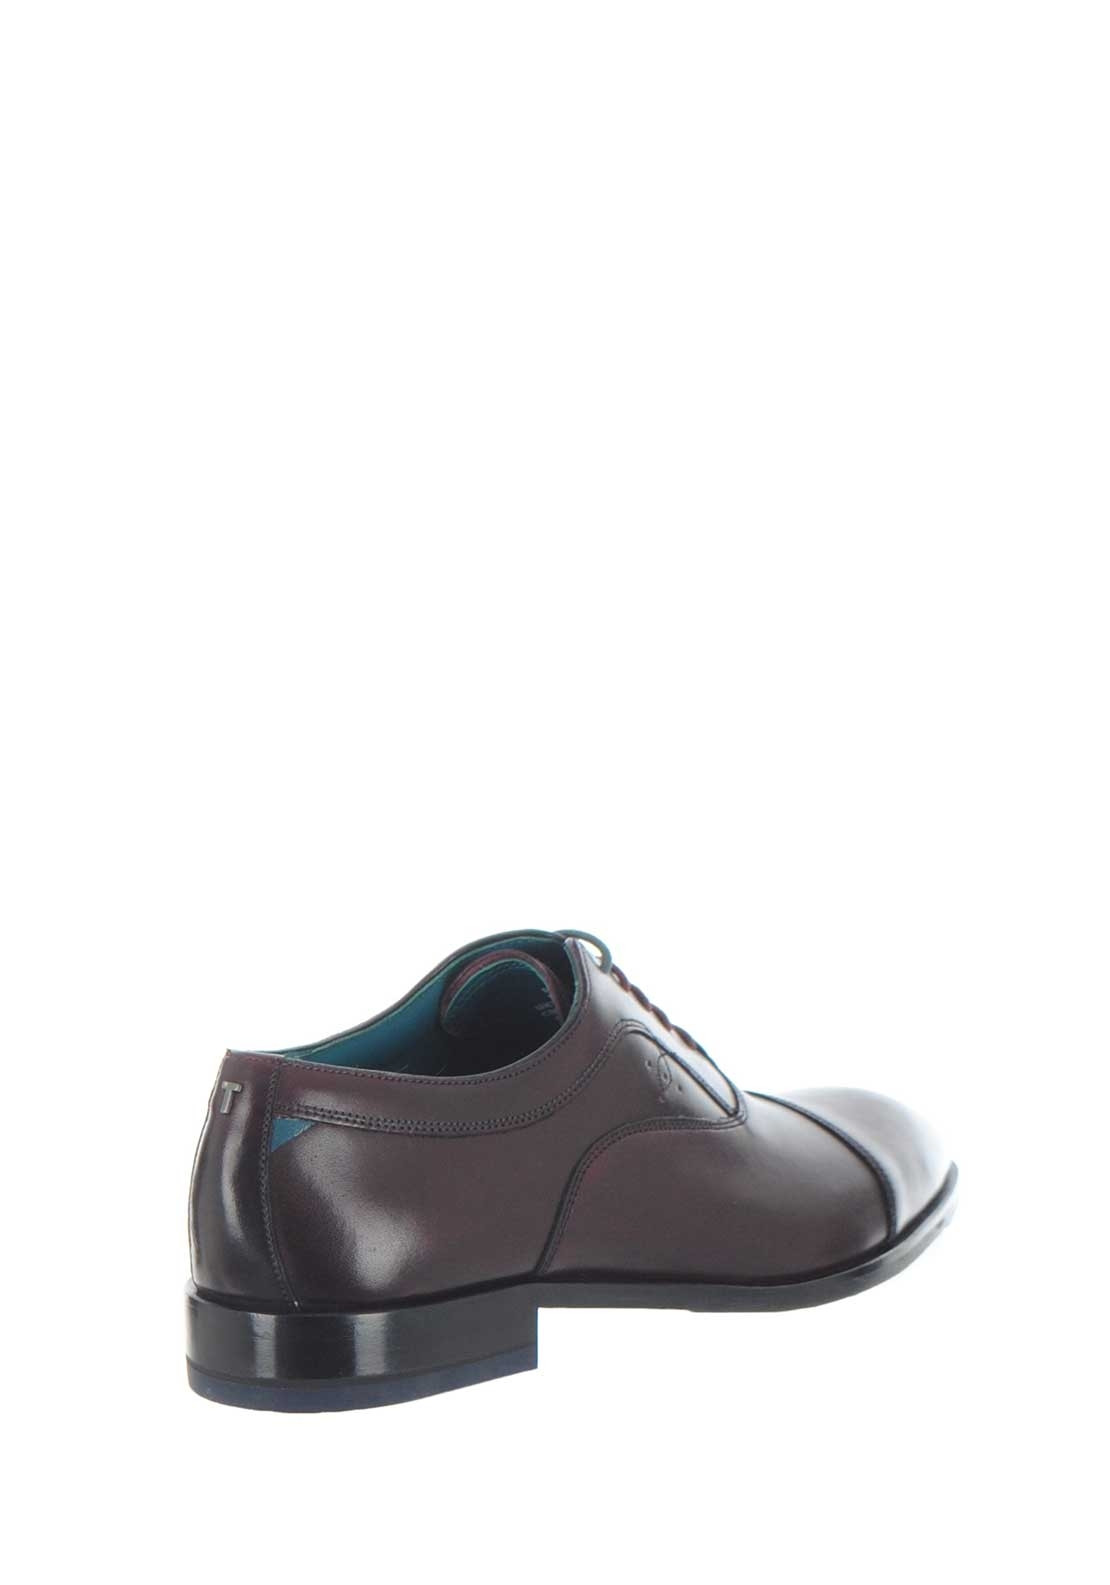 09ec688f9 Ted Baker Oxford Leather Shoe Wine Mcelhinneys. Best Dress Shoes For Men ...